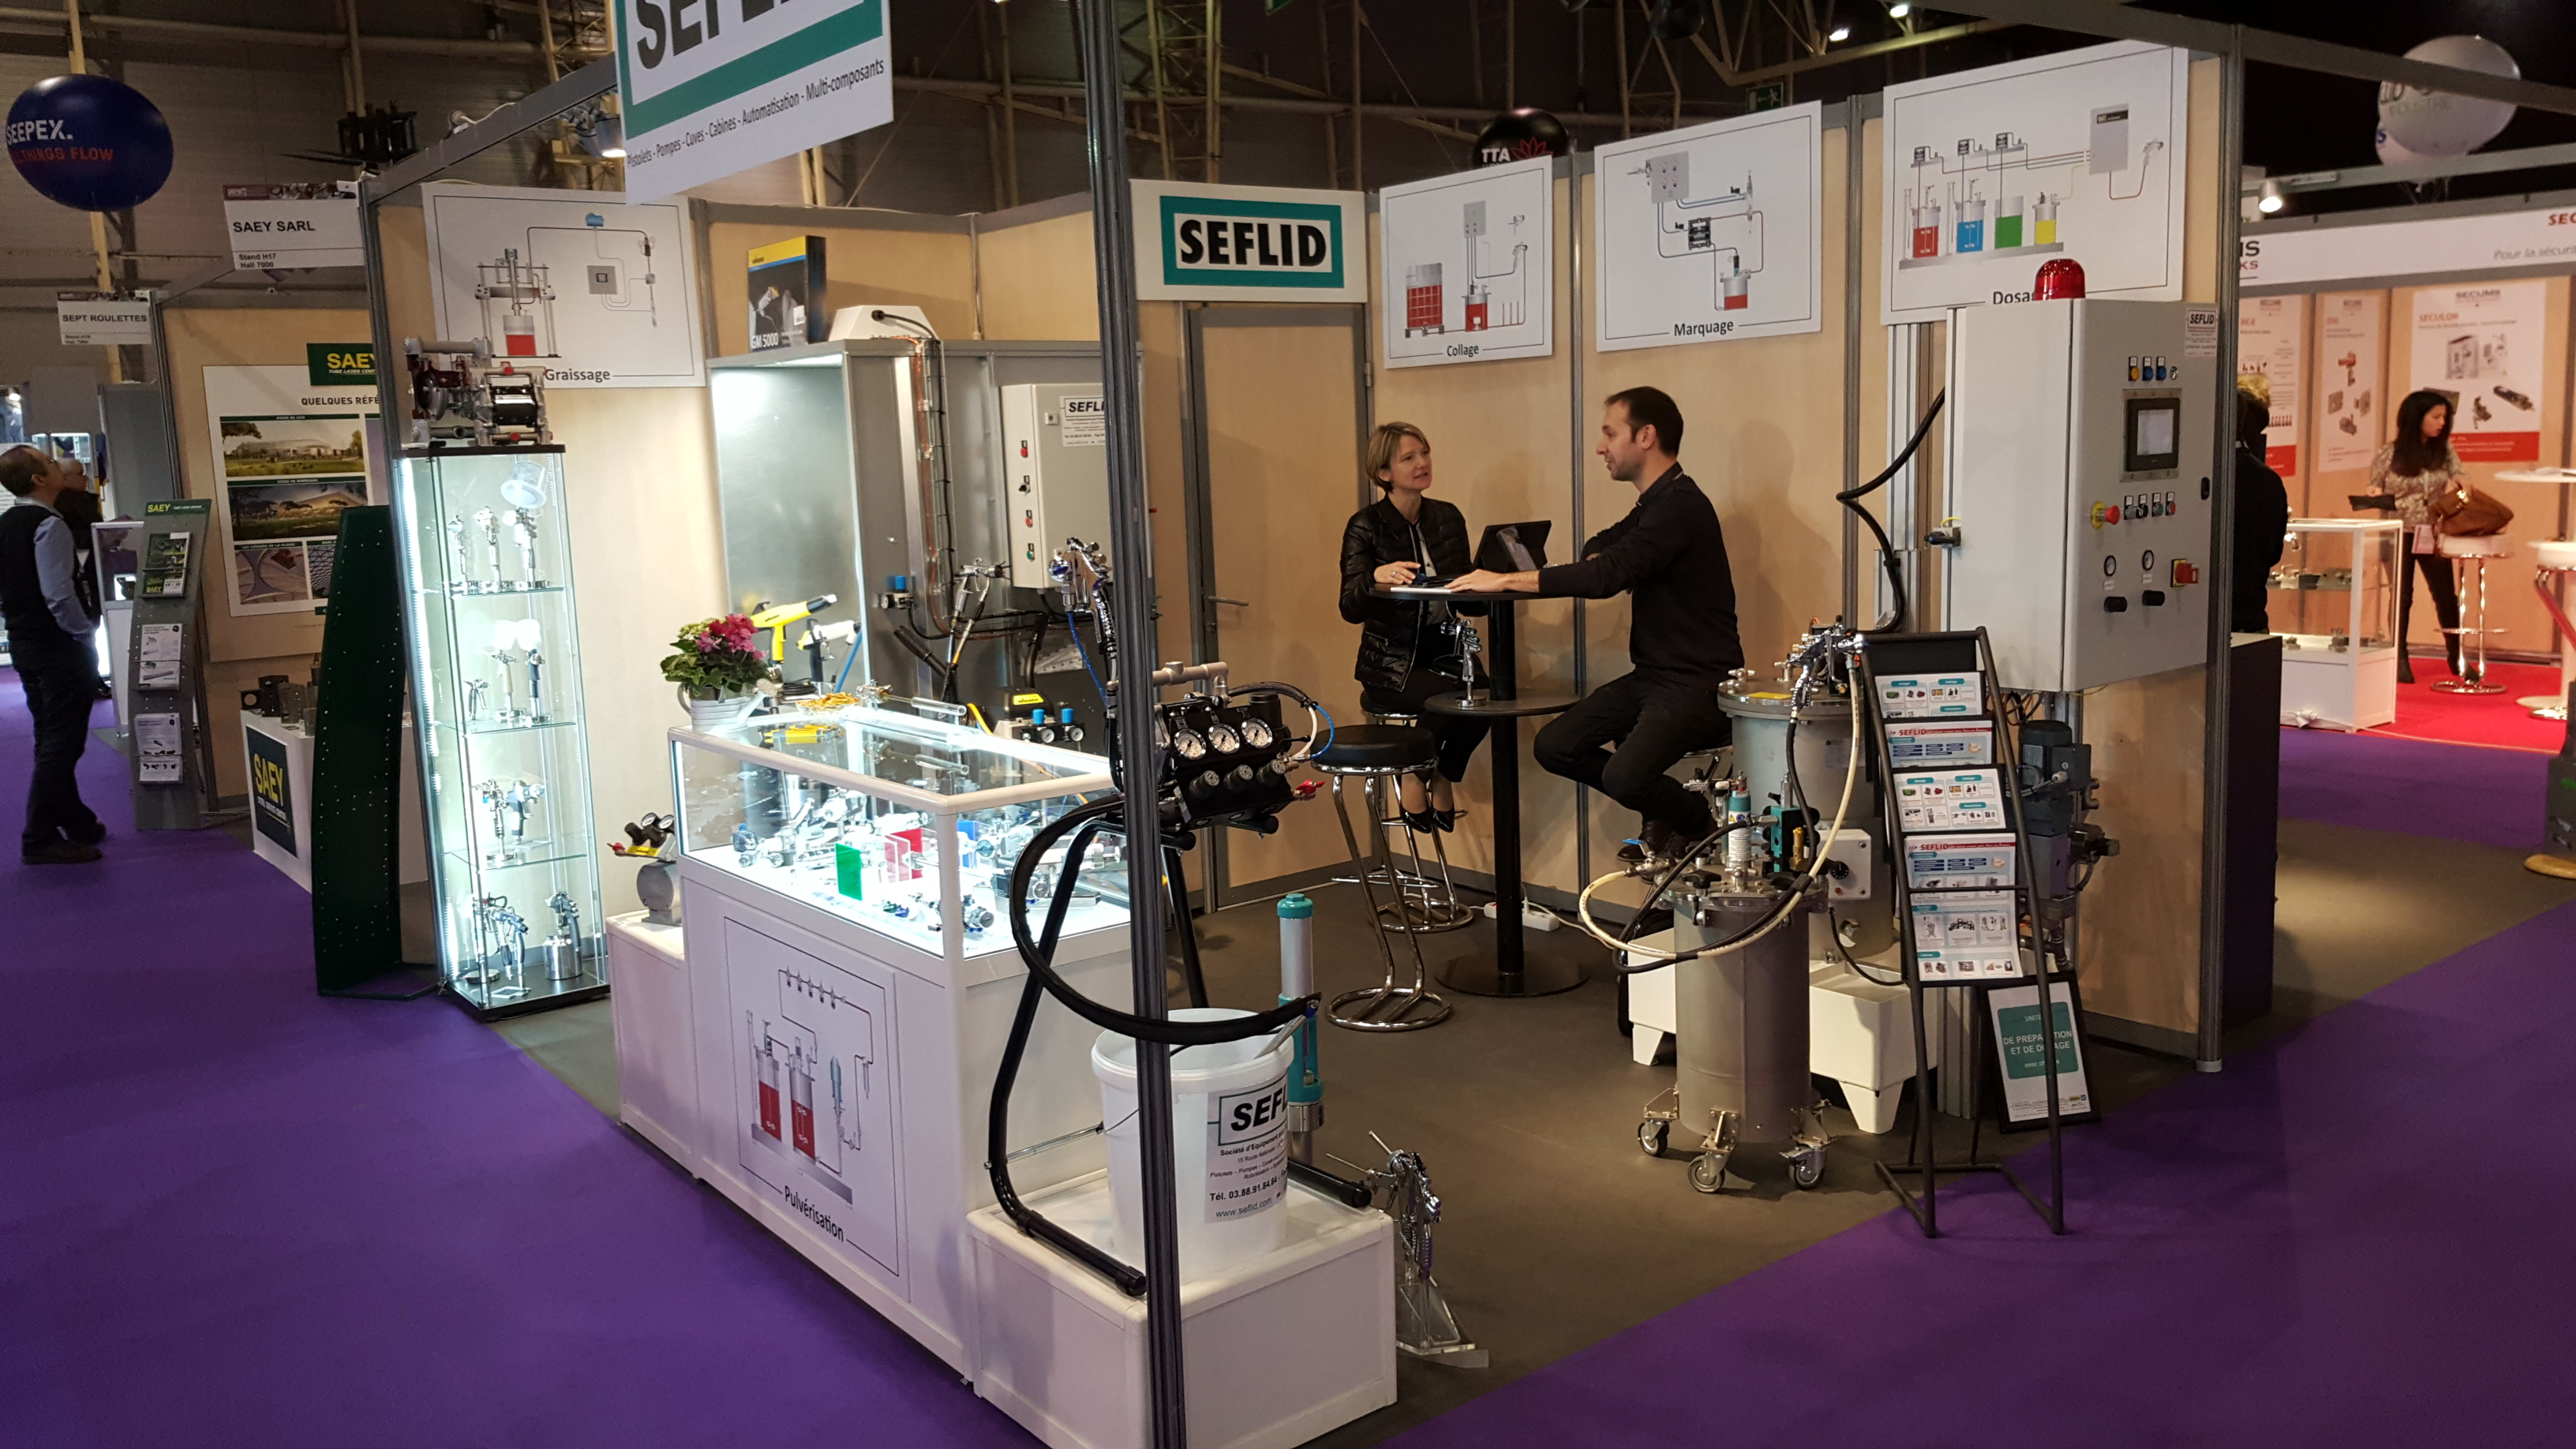 Salon sepem douai 2017 seflid for Salon sepem